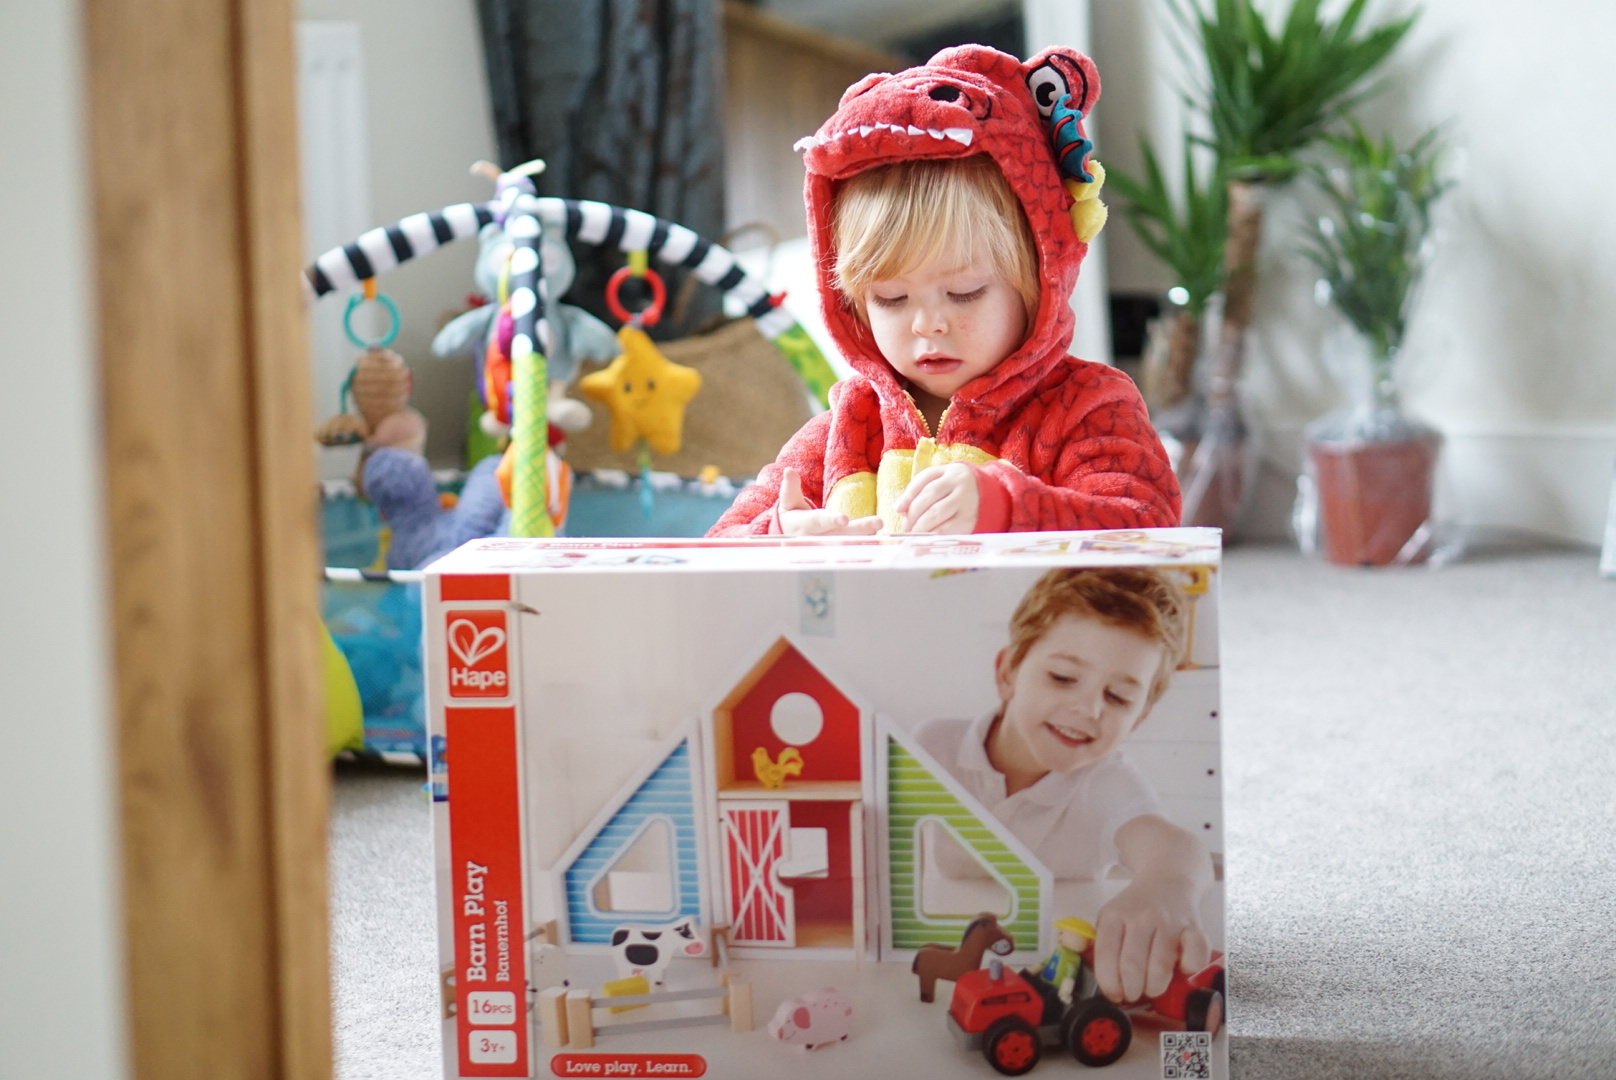 Hape Barn Play giveaway